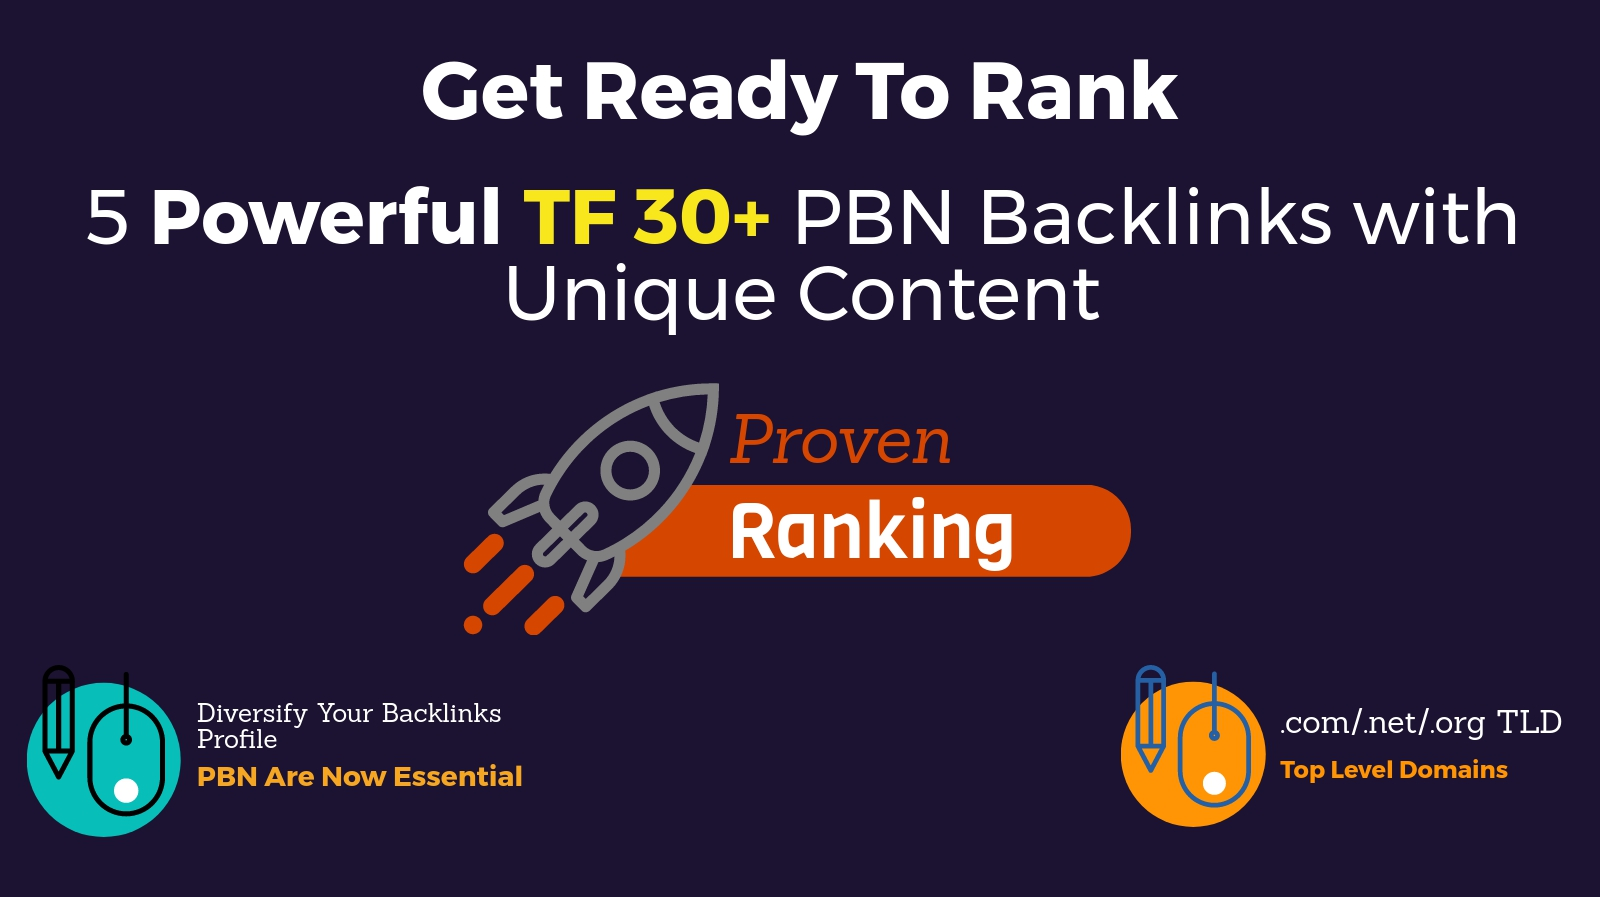 REOPENED  EliteX 5 Homepage TF 30+ Powerful PBN Backlinks Posts V2  Proven Ranking with Unique Content